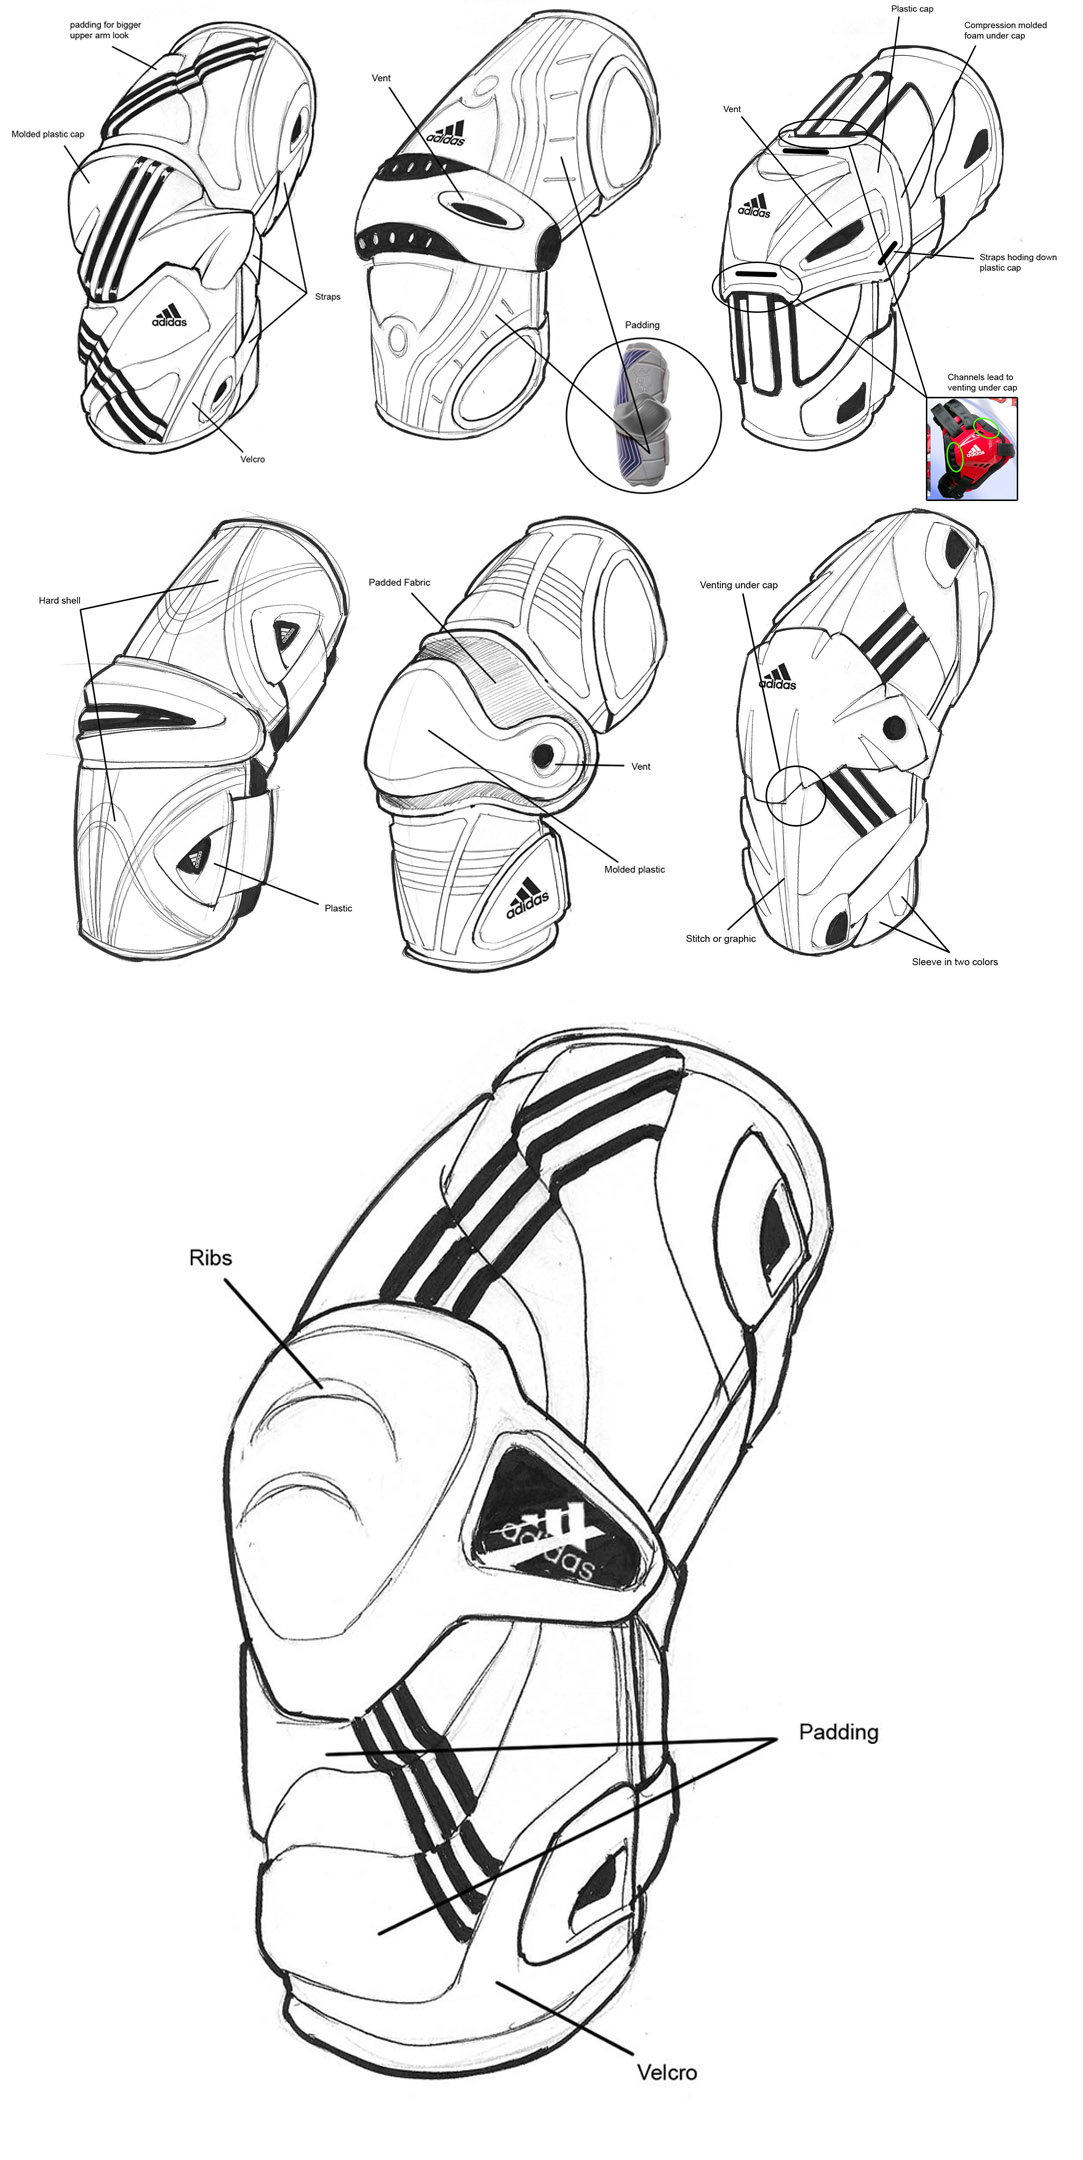 Adidas Elbow Guard Industrial Design Concepts